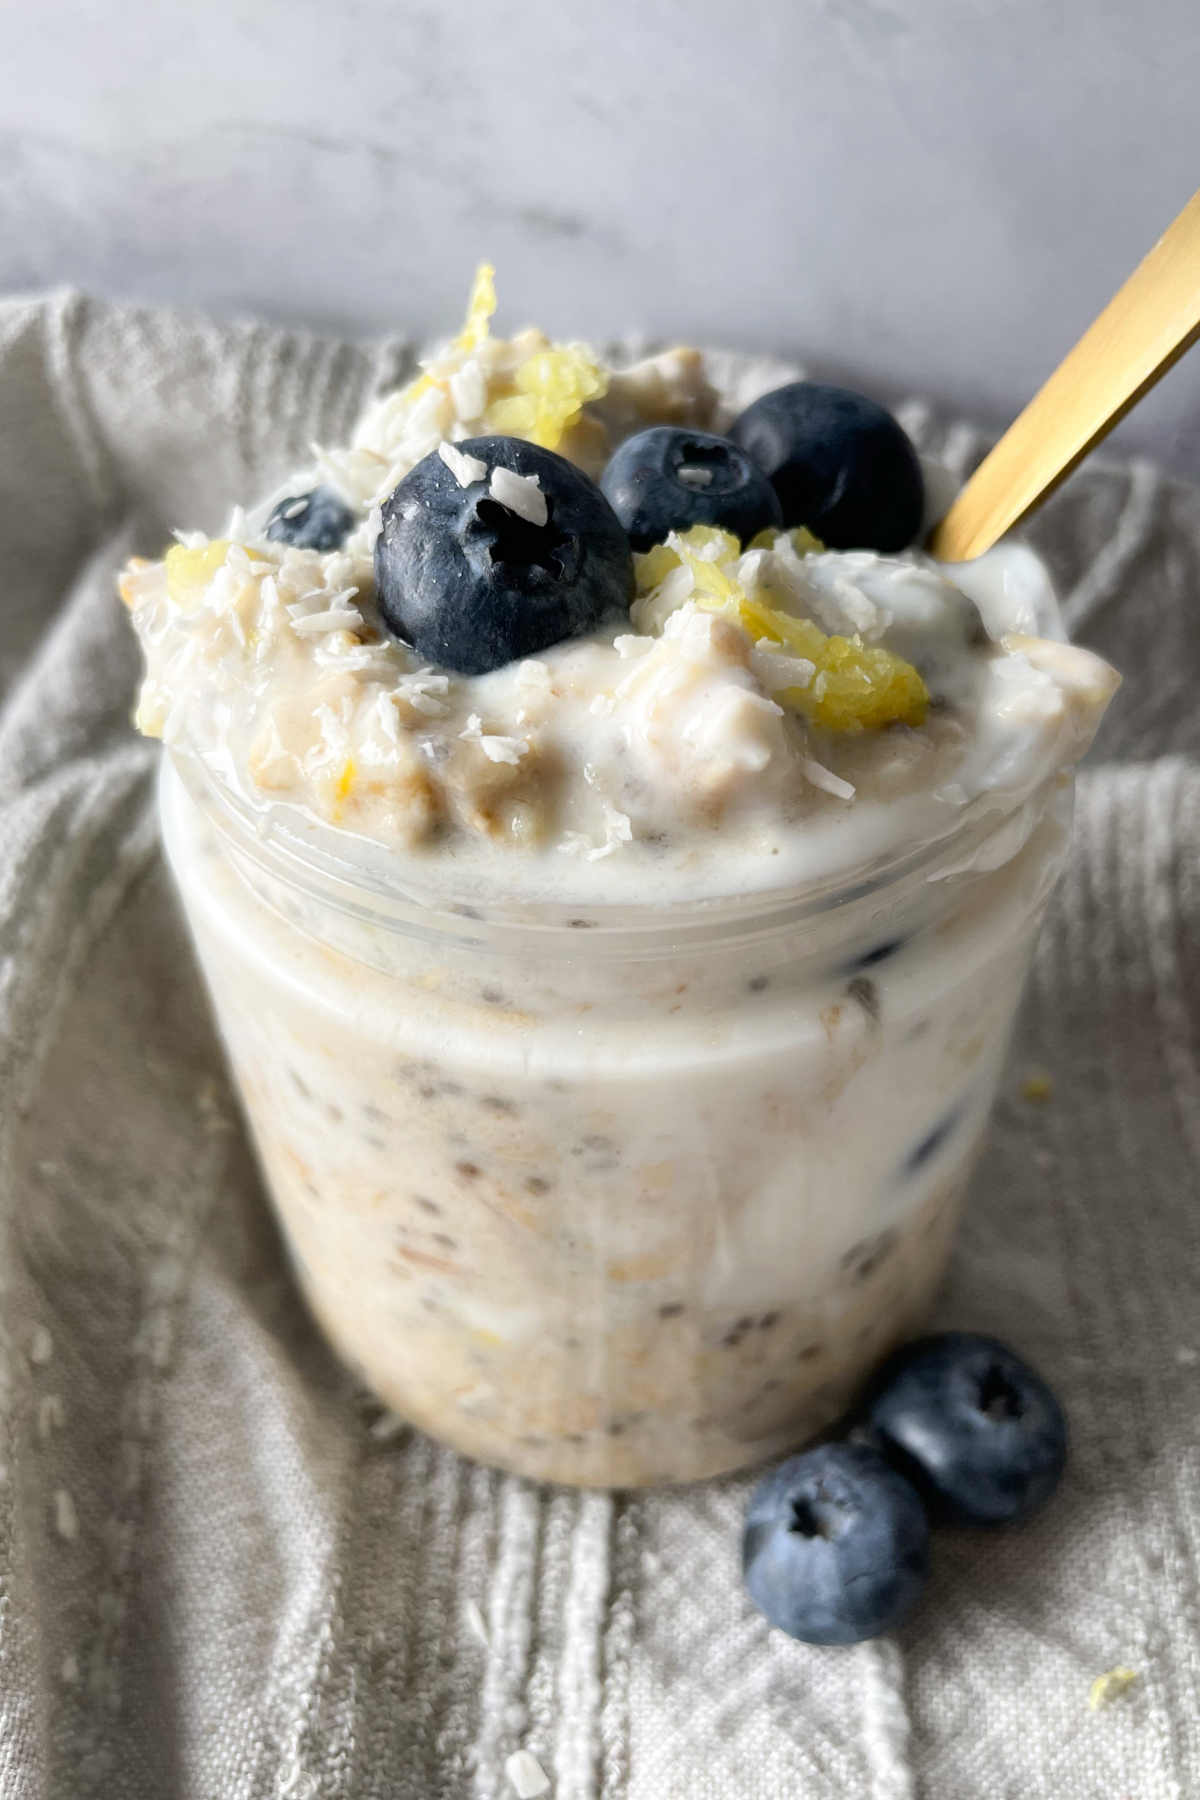 overnight oats in a jar with a grey napkin and gold spoon